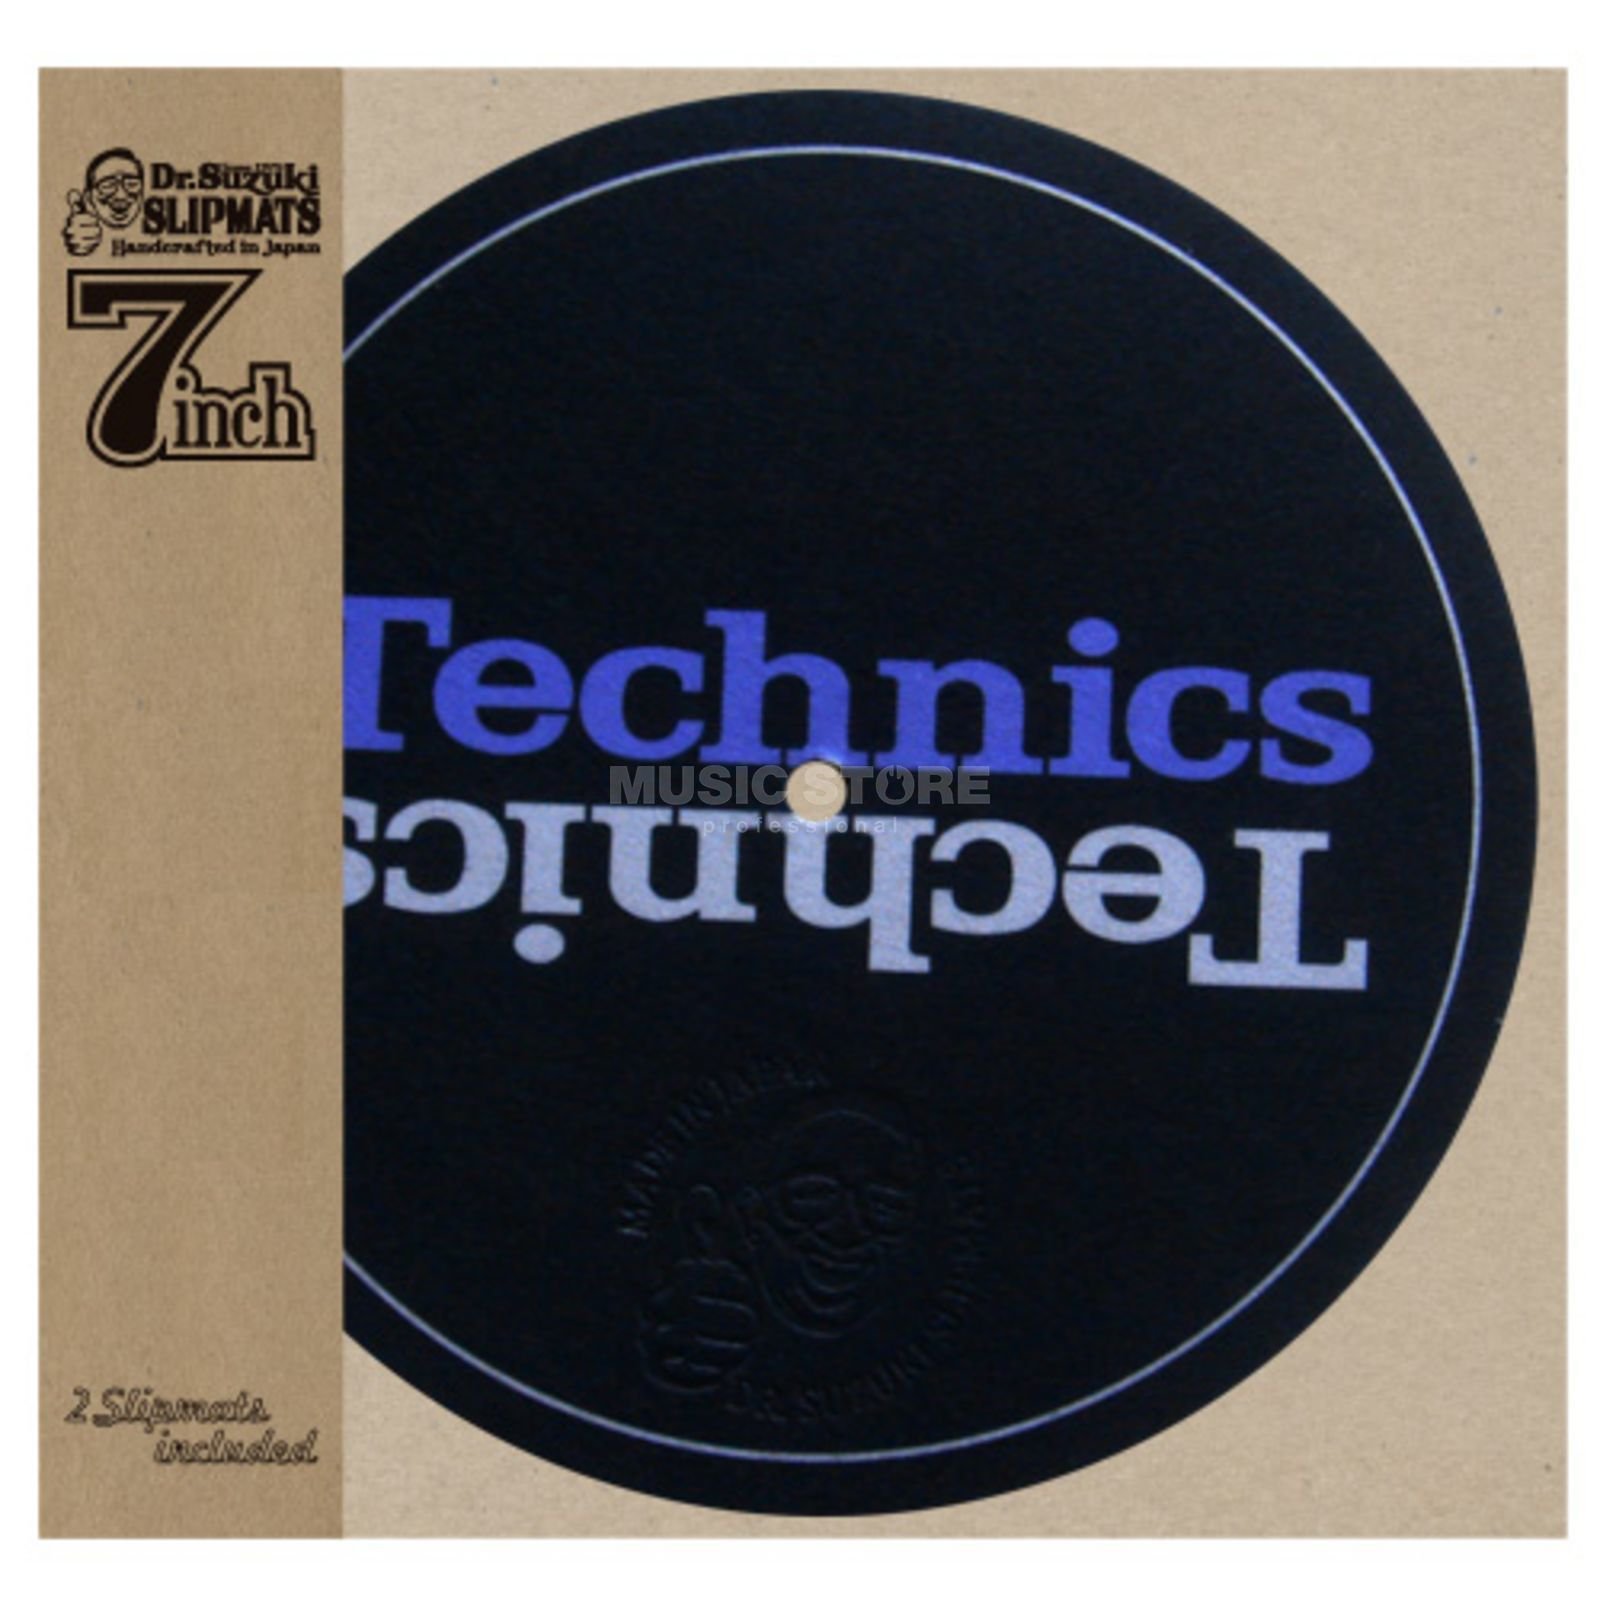 "Tablecloth Dr. Suzuki 7"" Mix Edition Slipmats Technics (paar) Imagem do produto"